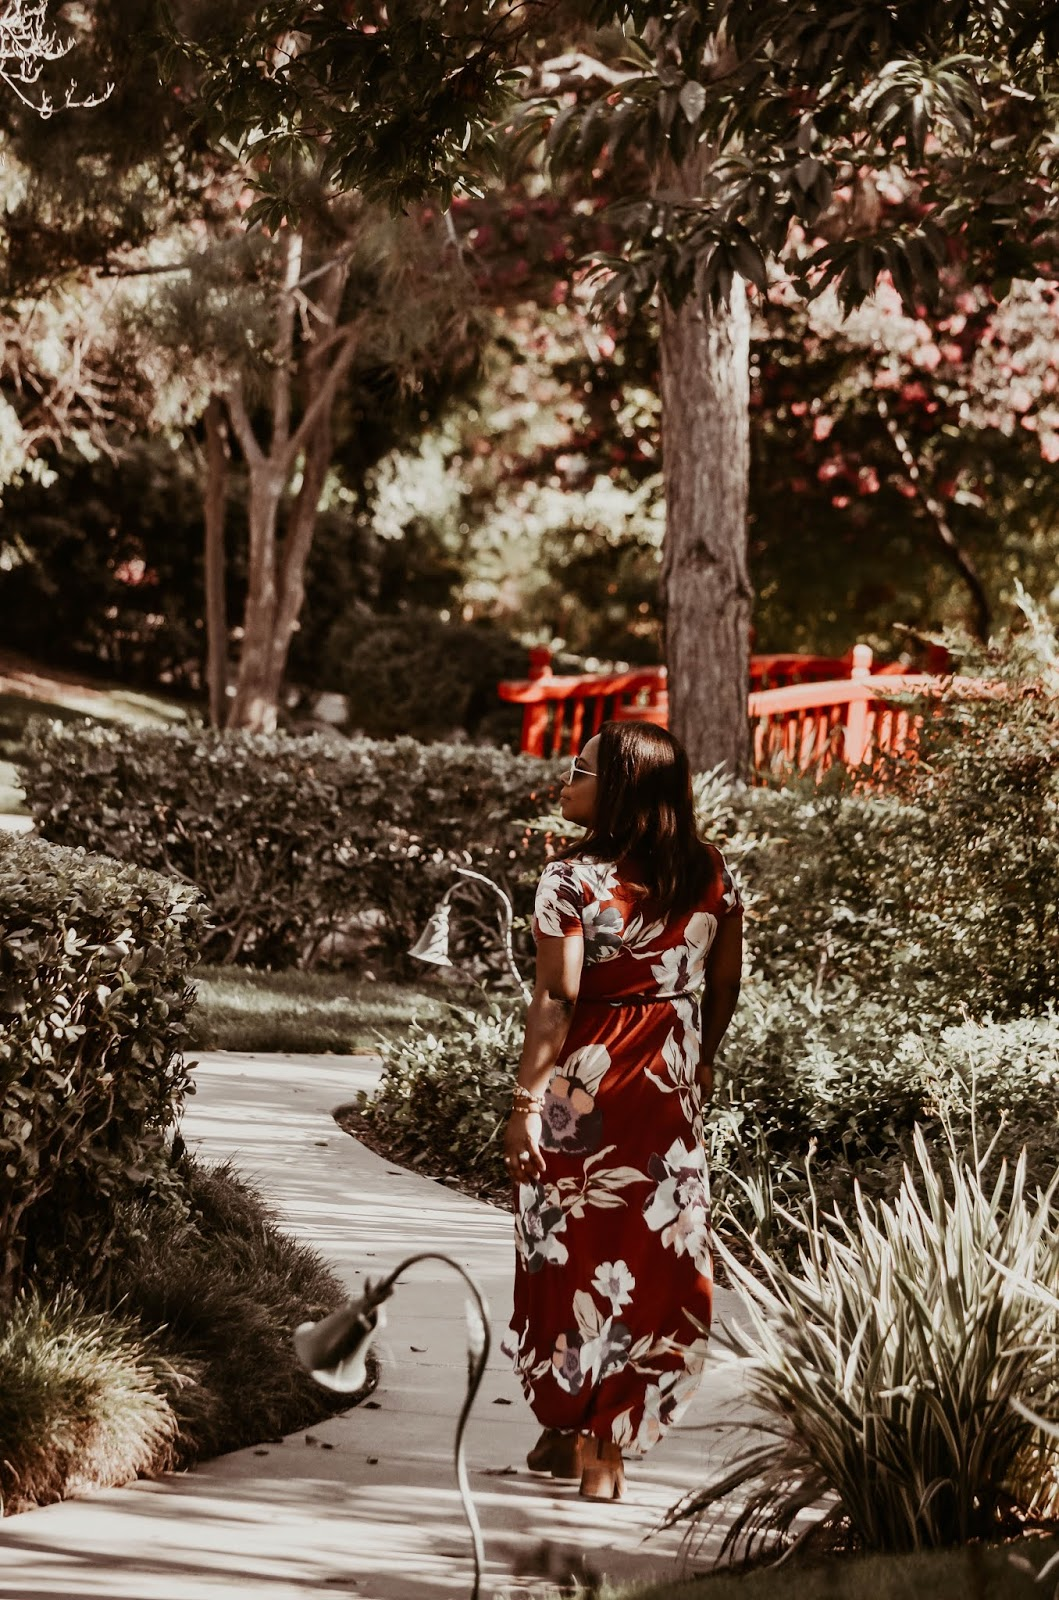 the-most-memorable-end-of-summer2019-staycation-at-the-langham-huntington-hotel-japanese-garden-pasadena-california